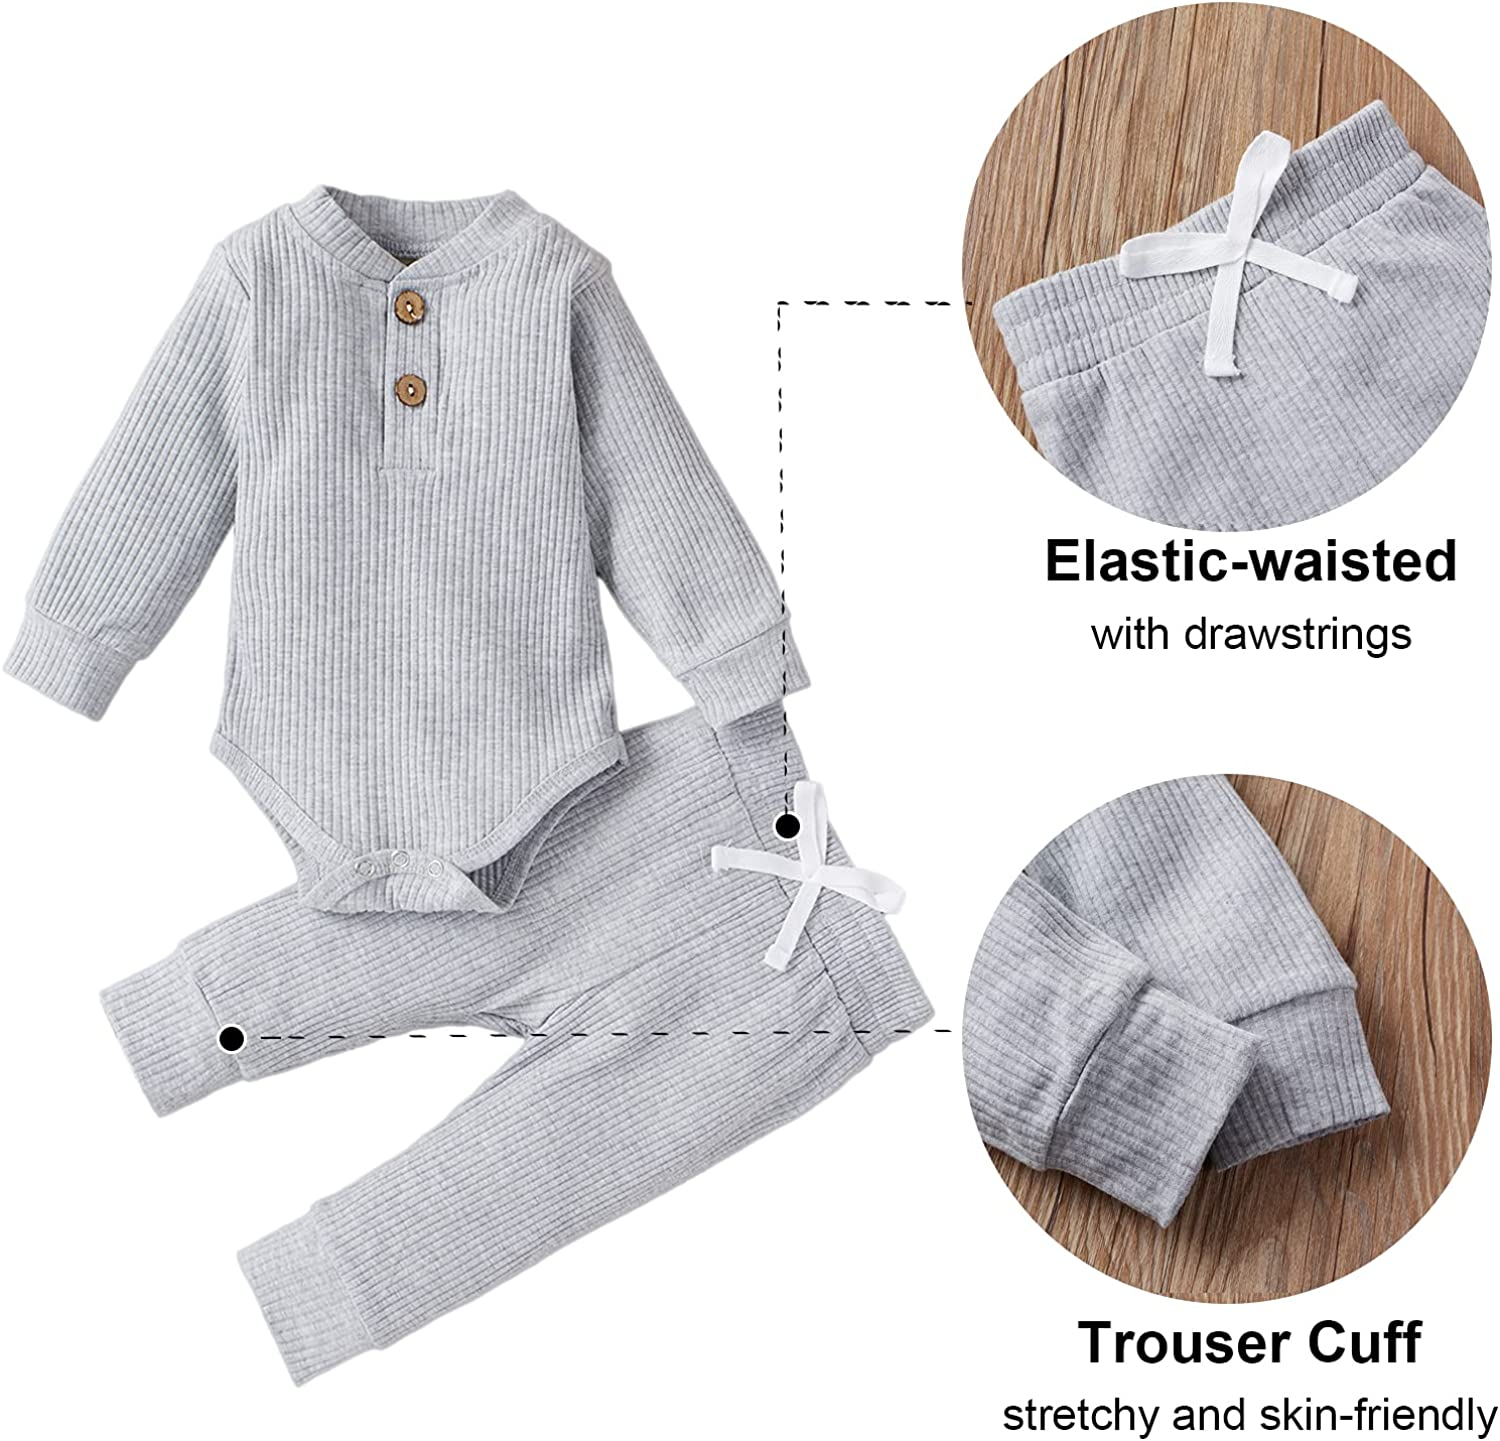 HZYKOK Newborn Baby Boy Girl Clothes Set Unisex Infant Ribbed Outfits Solid Cotton Long Sleeve Tops Pants 2PCS